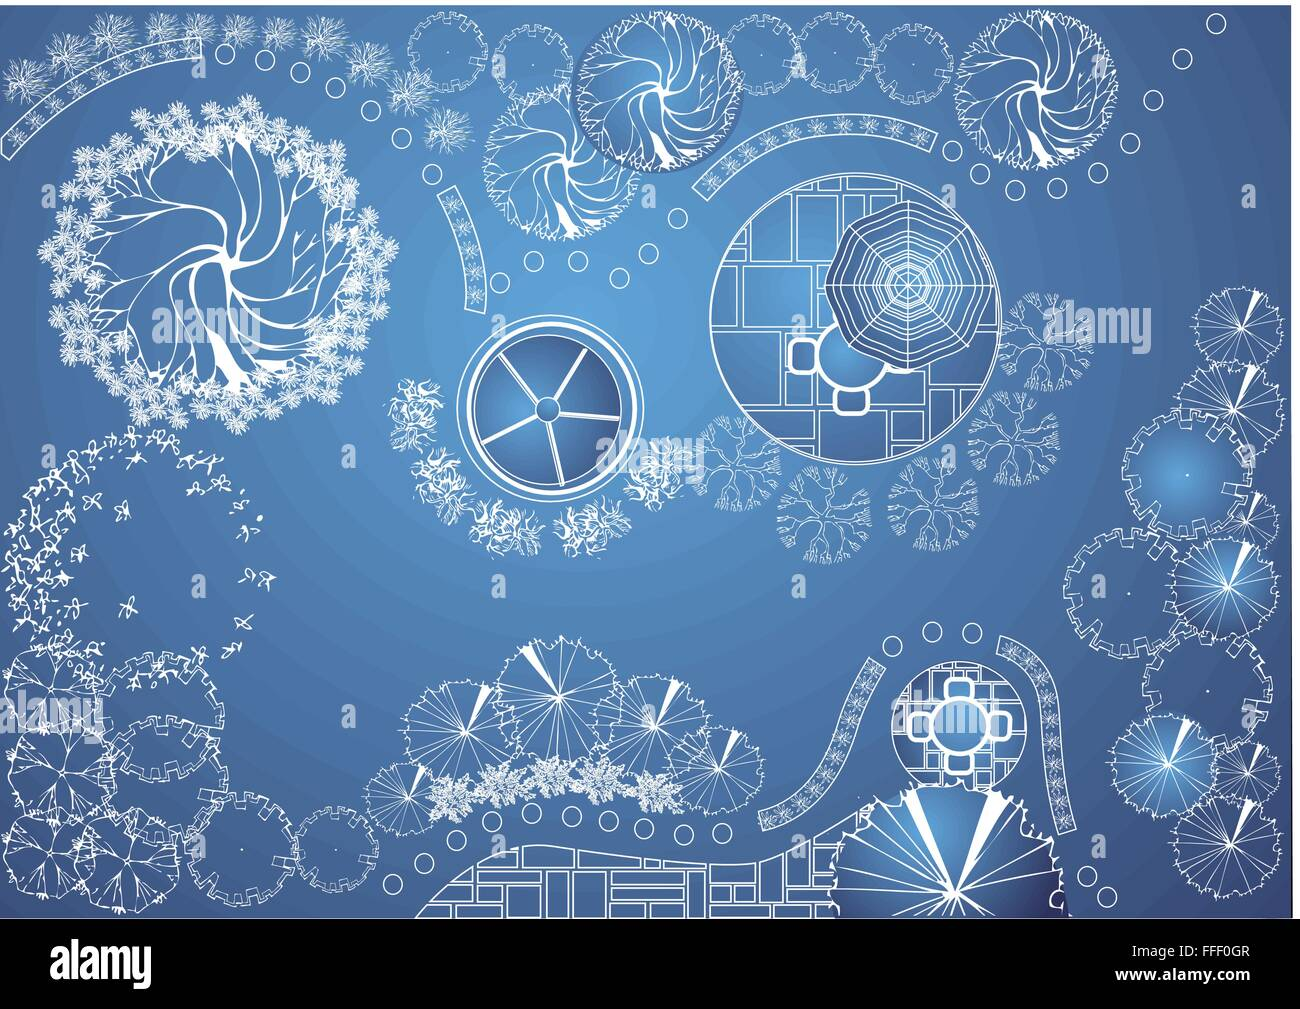 Vector Blueprint Of Landscape Architectural Project Garden Plan With Tree Symbols